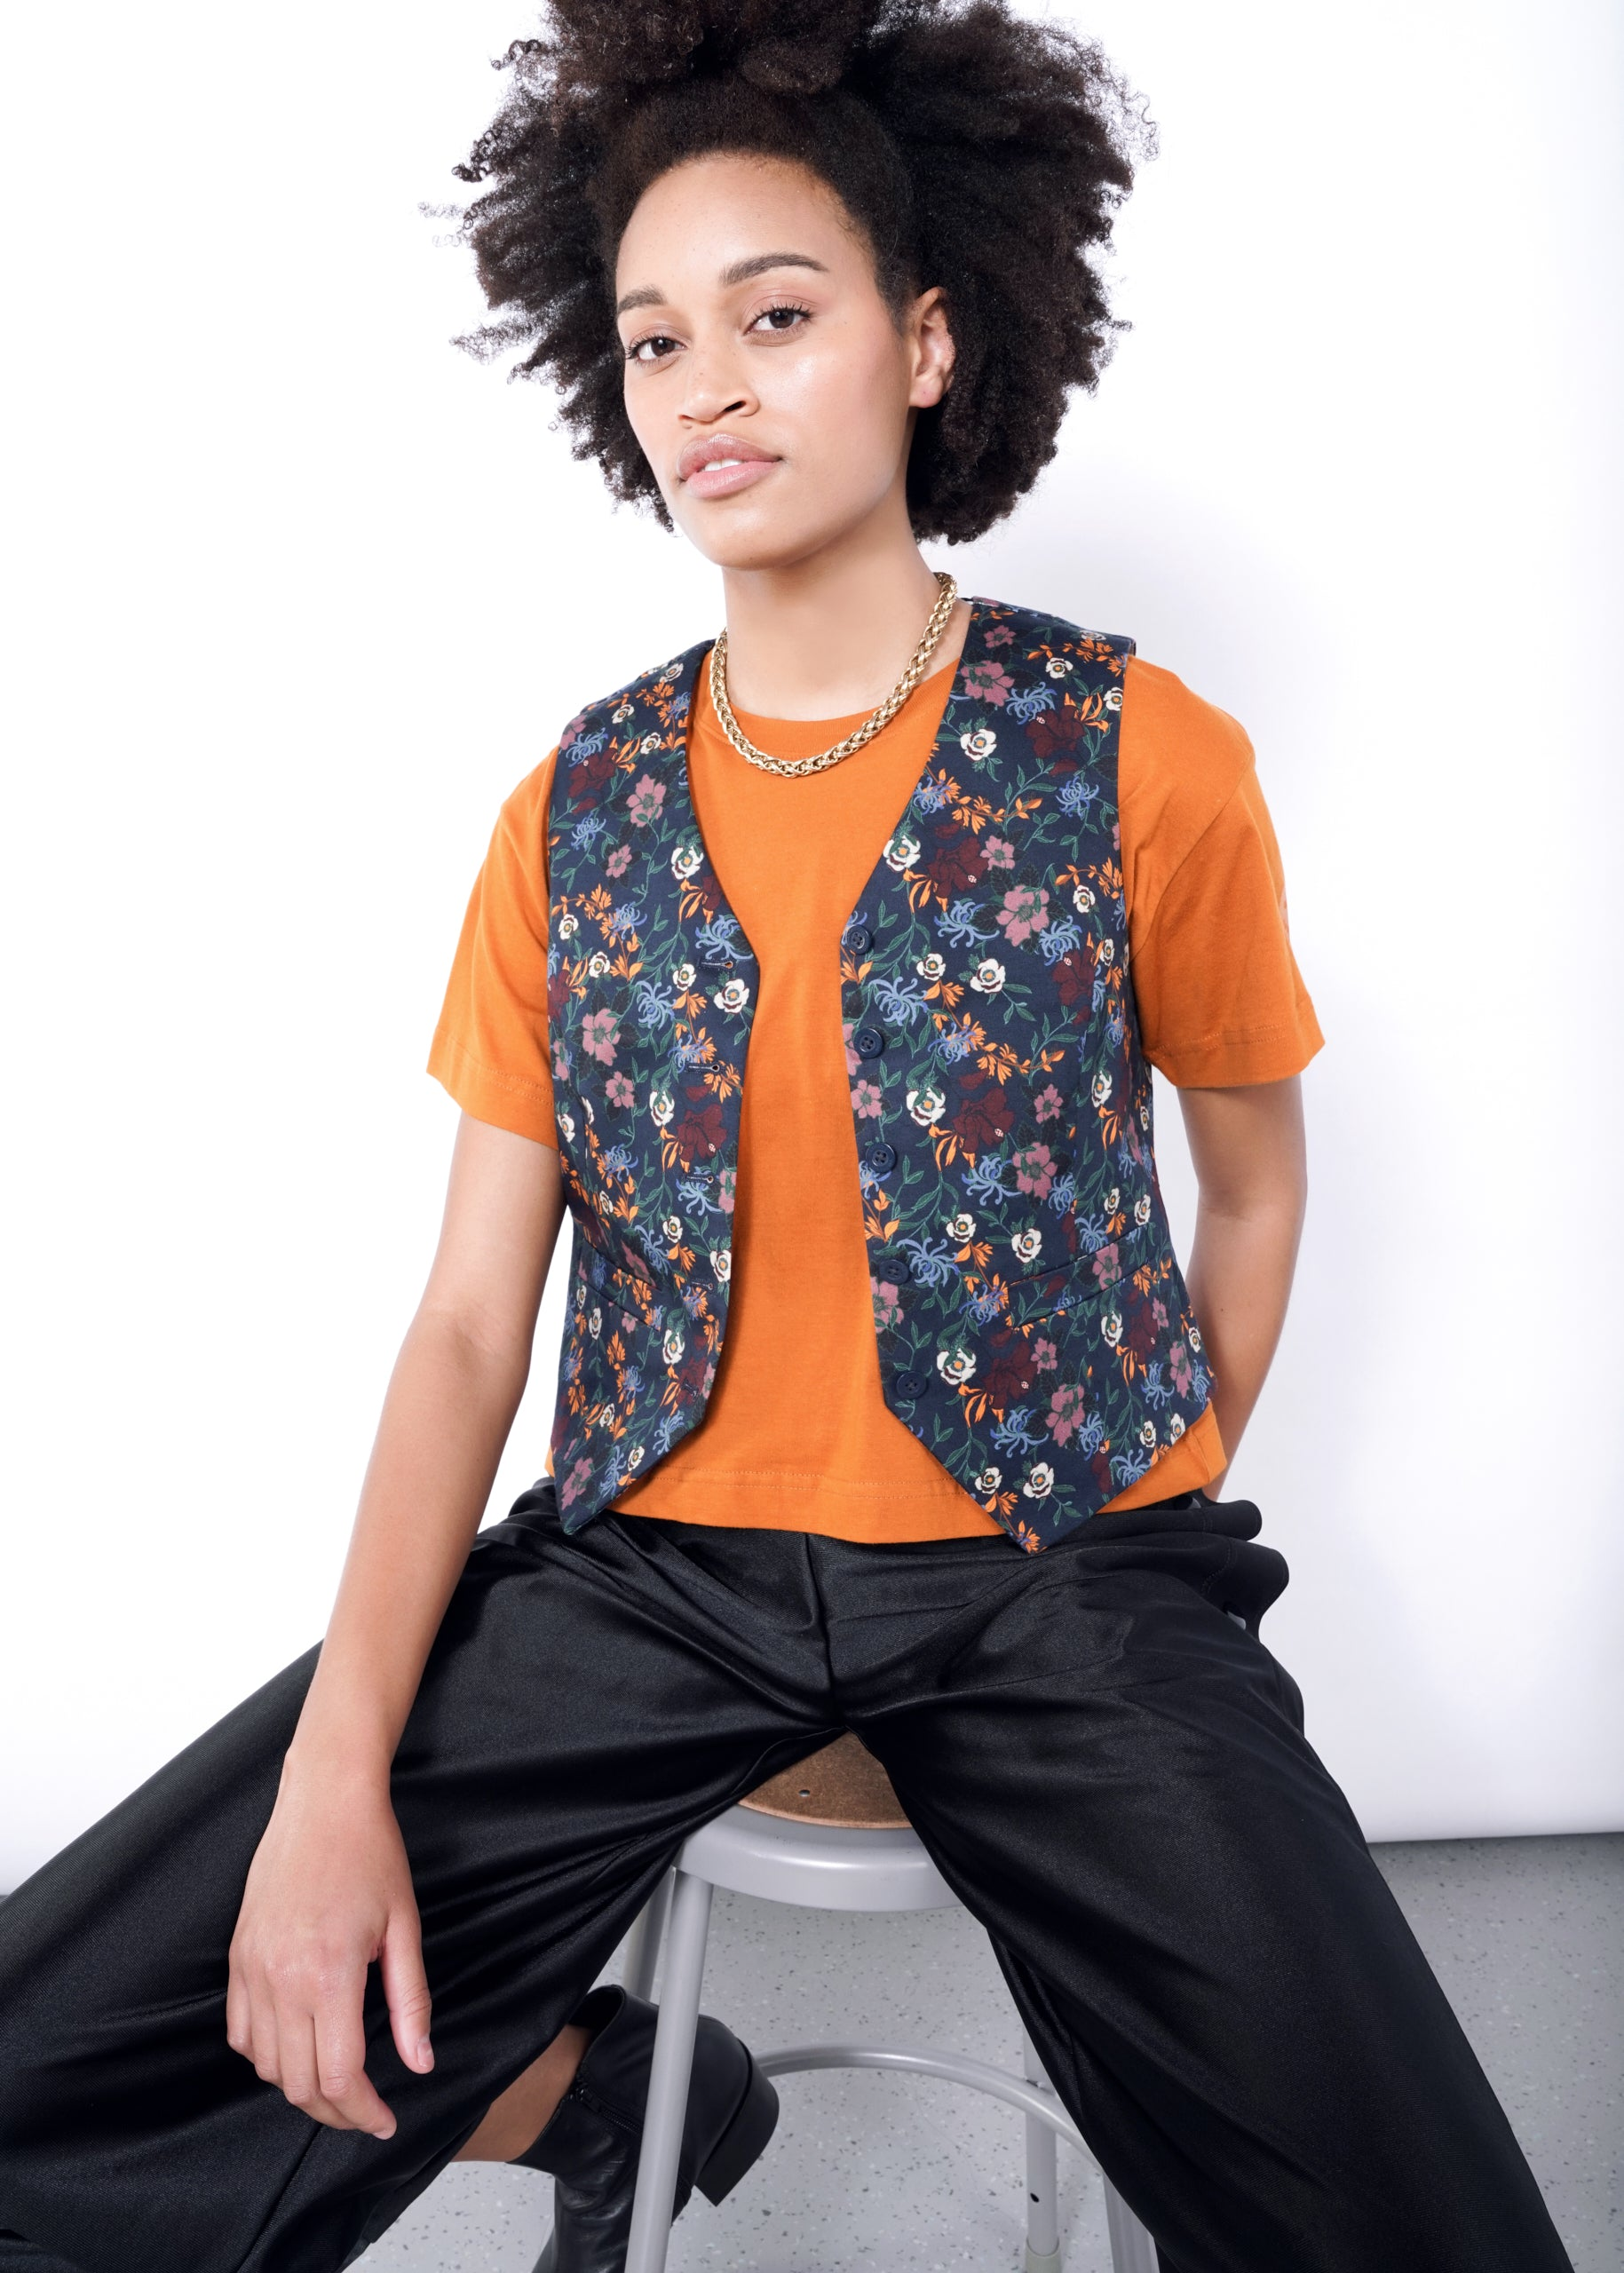 The Empower Wildflower Vest